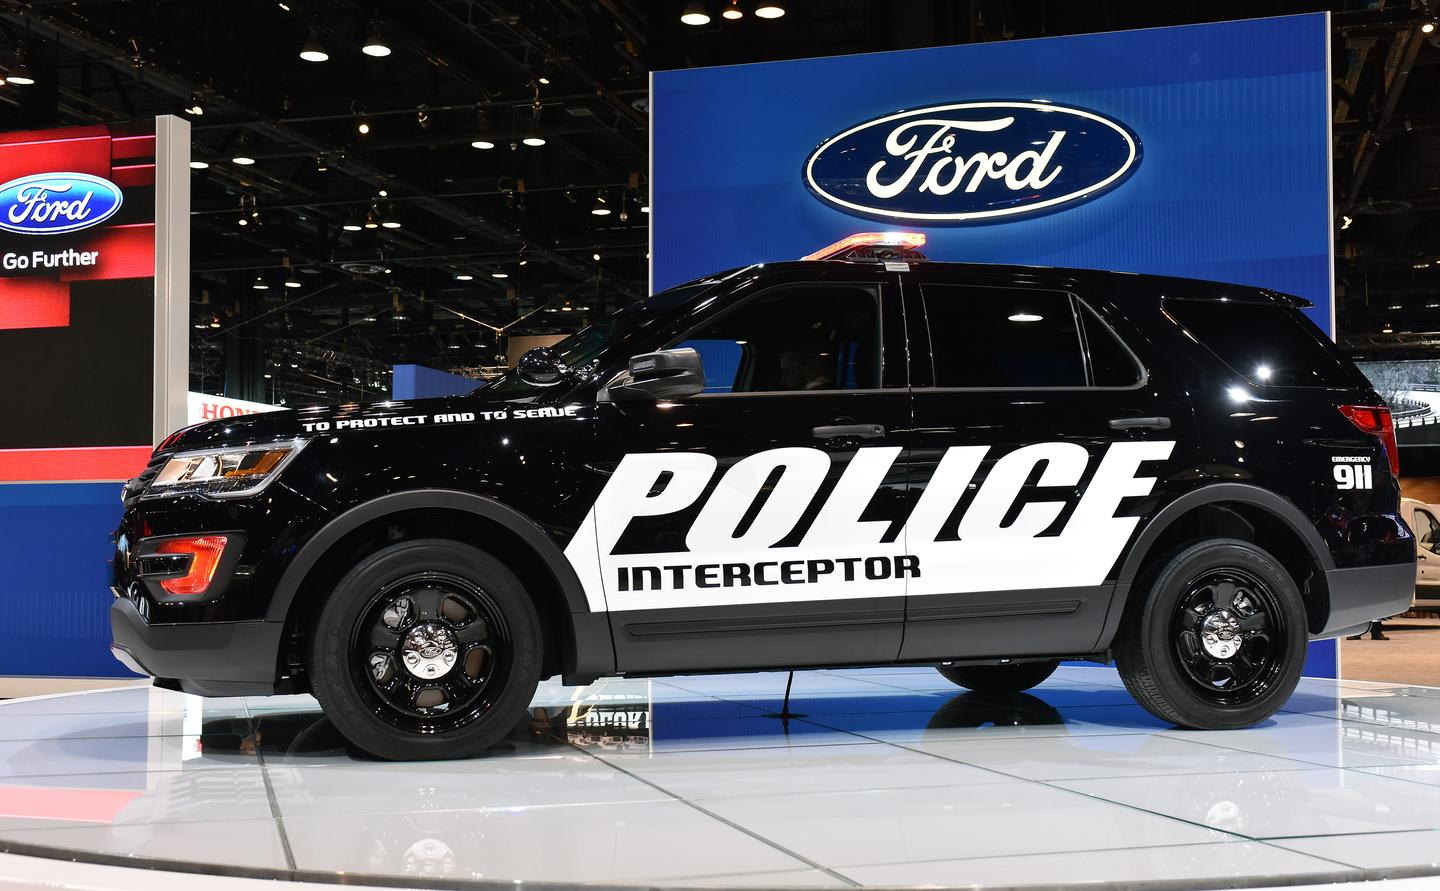 The Ford Police Interceptor Utility will be offered with a choice of two different engines